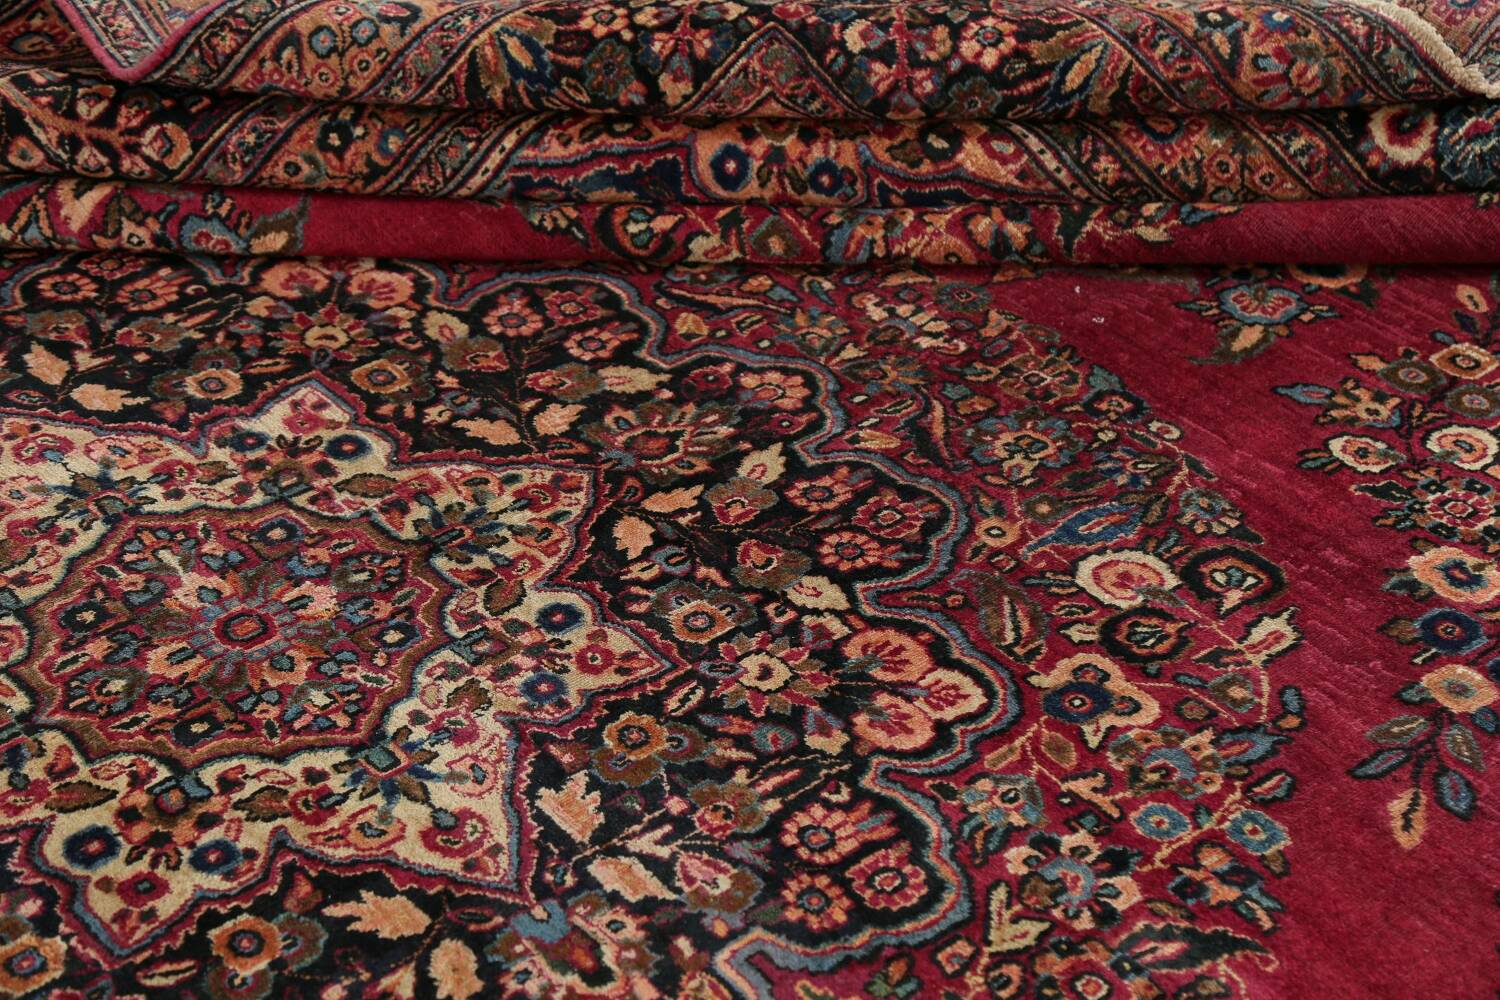 Antique Floral Red Dorokhsh Persian Rug Large 11x14 image 22